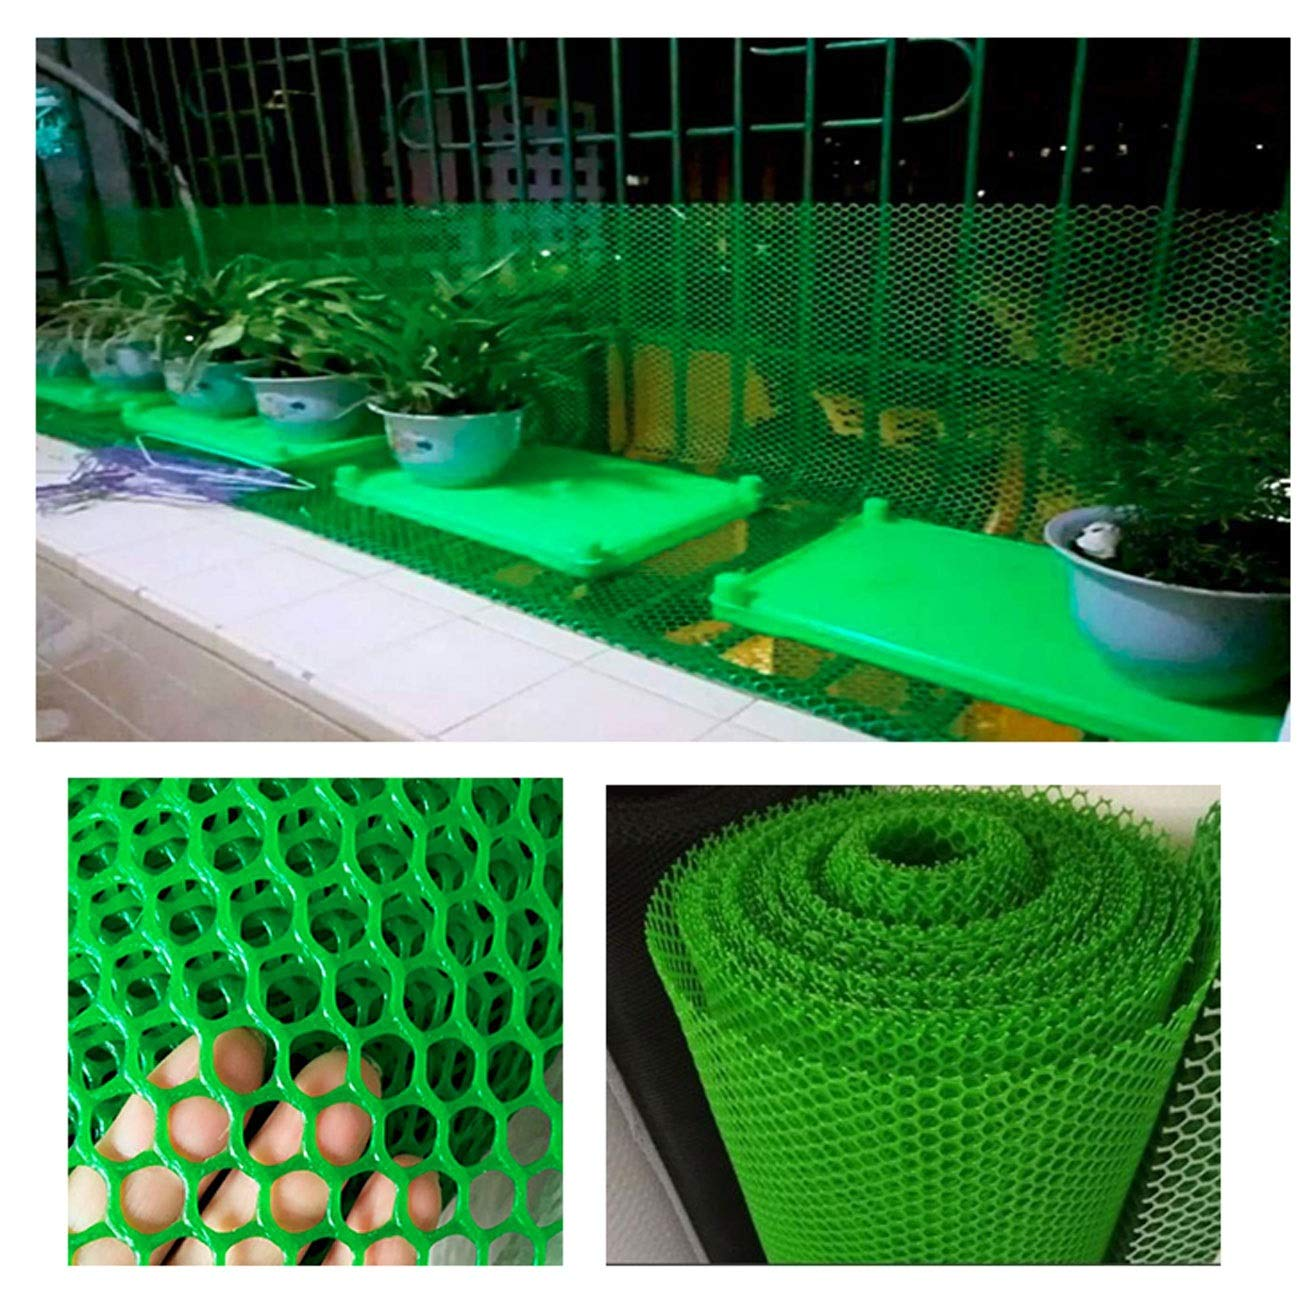 Grass Protection Mesh for Lawn or Car Park Reinforcement Green Plastic Child Safety Net Balcony Protection Net Stairs Anti-fall Net 10m 20m 30m 50m (Size : 2 * 50m) NNFHW ♦ Plastic safety mesh with a diameter of 1.8cm prevents children's head and body from falling through the railing and prevents toys and shoes from falling from the gap between the armrests. It can even be used as a pet safety door. Provide a safe gaming environment for children. ♦ Lawn protective grilles are used to reinforce large areas of flat surfaces, especially parks and lawn areas, slopes and embankments. The turf grid increases the load-bearing capacity of the soil. Effectively prevents the formation of ruts. Suitable for short-term parking, driveways, etc. ♦ Plastic flat net waterproof, wear-resistant, tough, light weight, long service life, non-toxic and tasteless, high transparency. Ideal for interior and exterior of residential buildings such as railings, stairs, cots, hallways, balconies, etc. The honeycomb design does not interfere with your view. 1